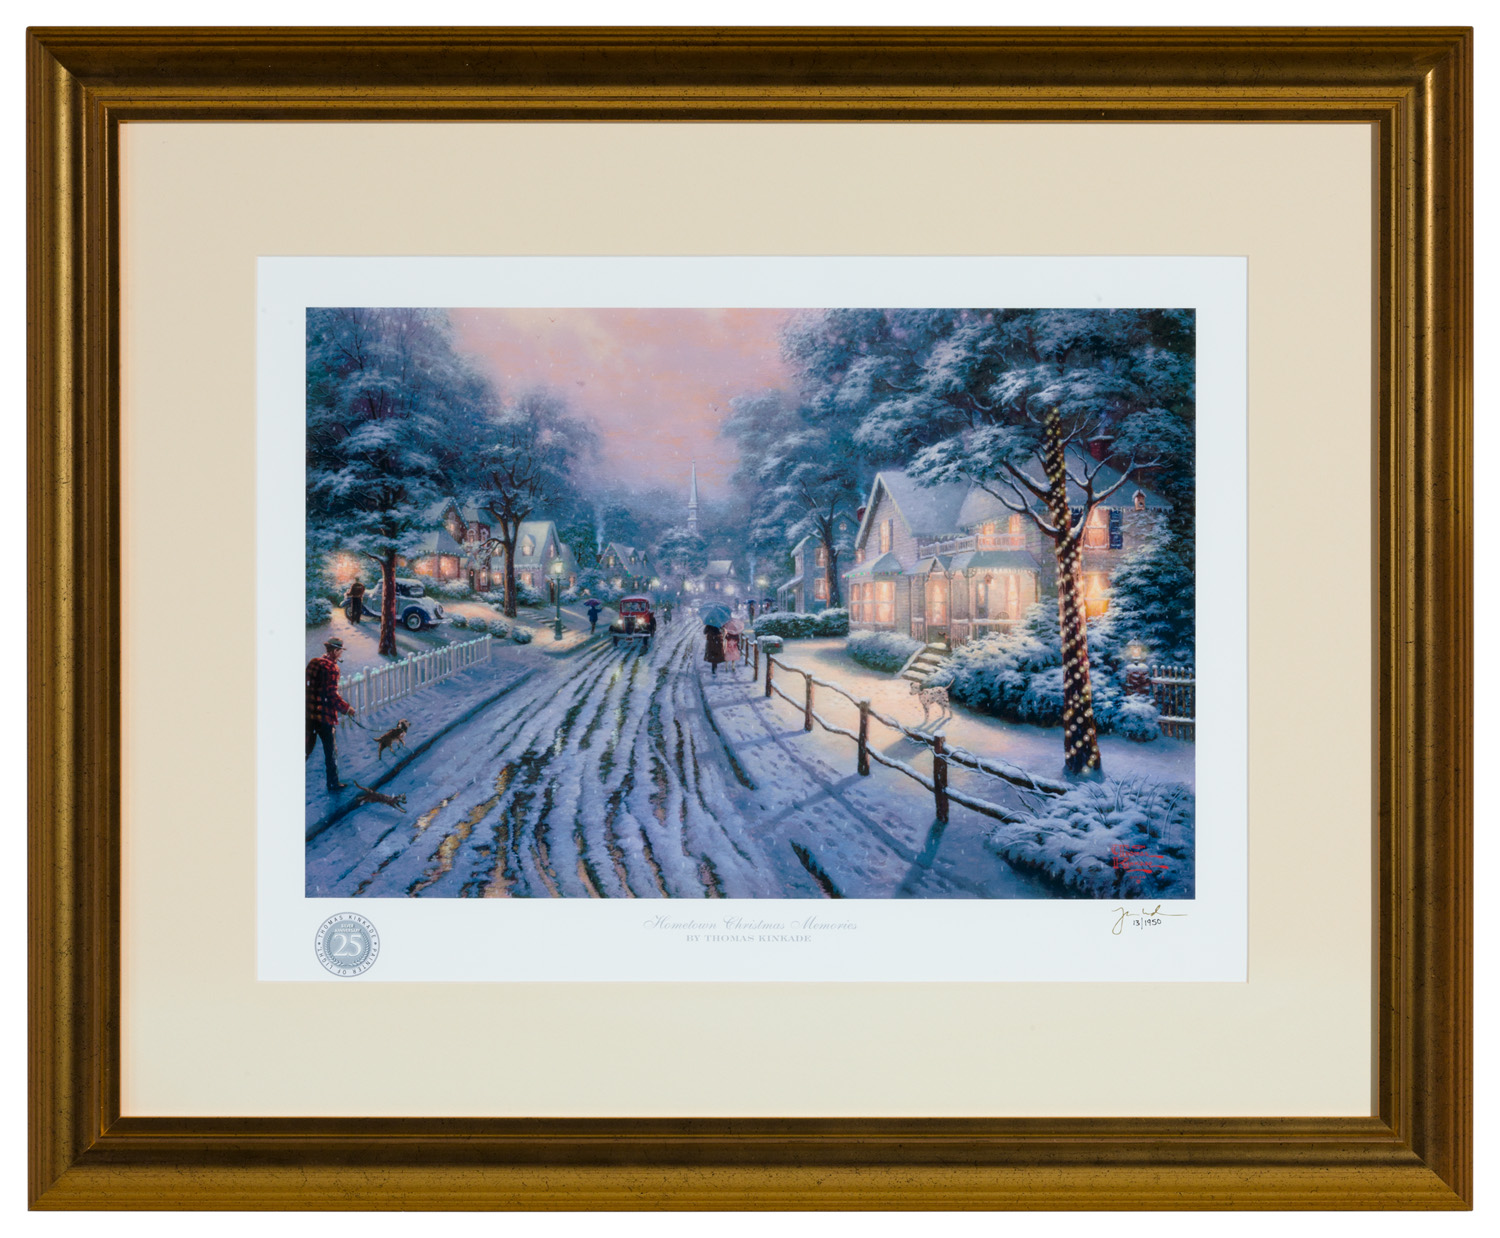 Hometown Christmas Memories – Framed Matted Print Signed by Thomas ...